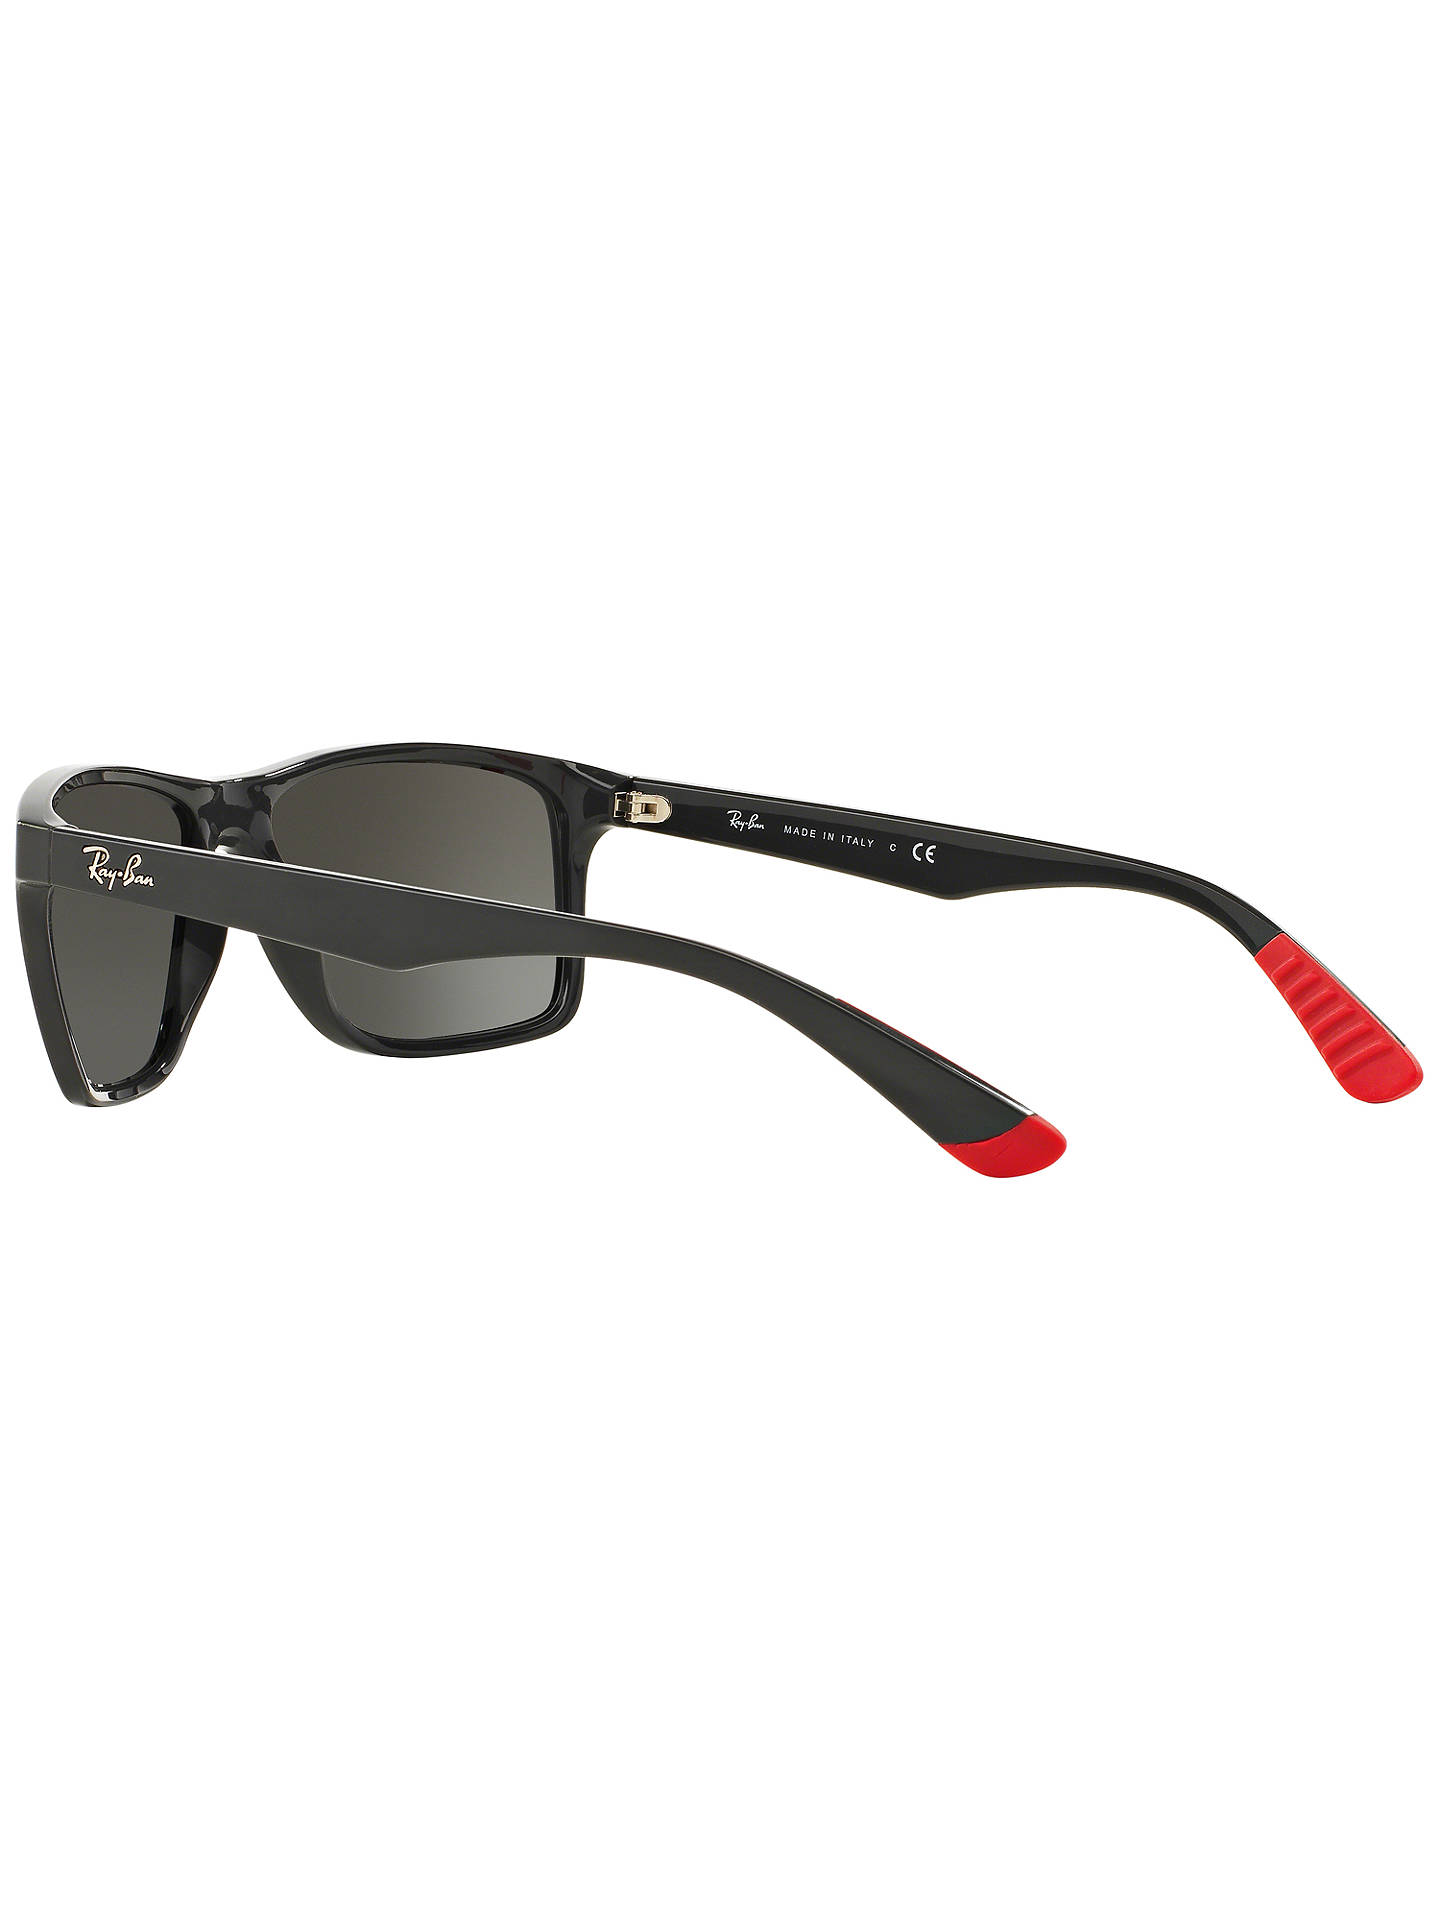 BuyRay-Ban RB4234 Rectangular Sunglasses, Silver Online at johnlewis.com